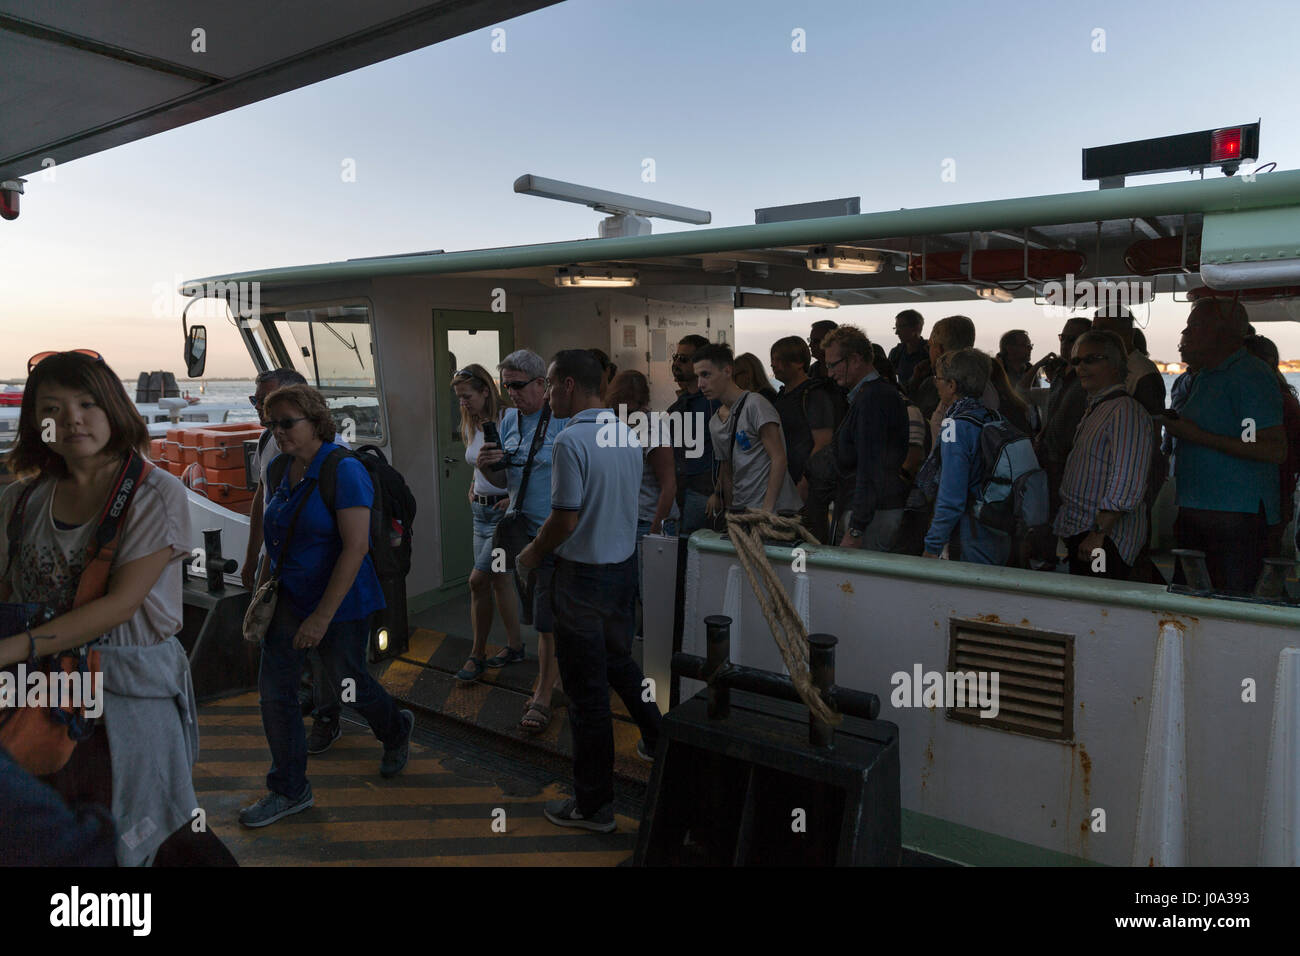 VENICE, ITALY - SEPTEMBER 22, 2016: Unrecognized tourists leaving the water bus at sunset. Venice is situated across - Stock Image